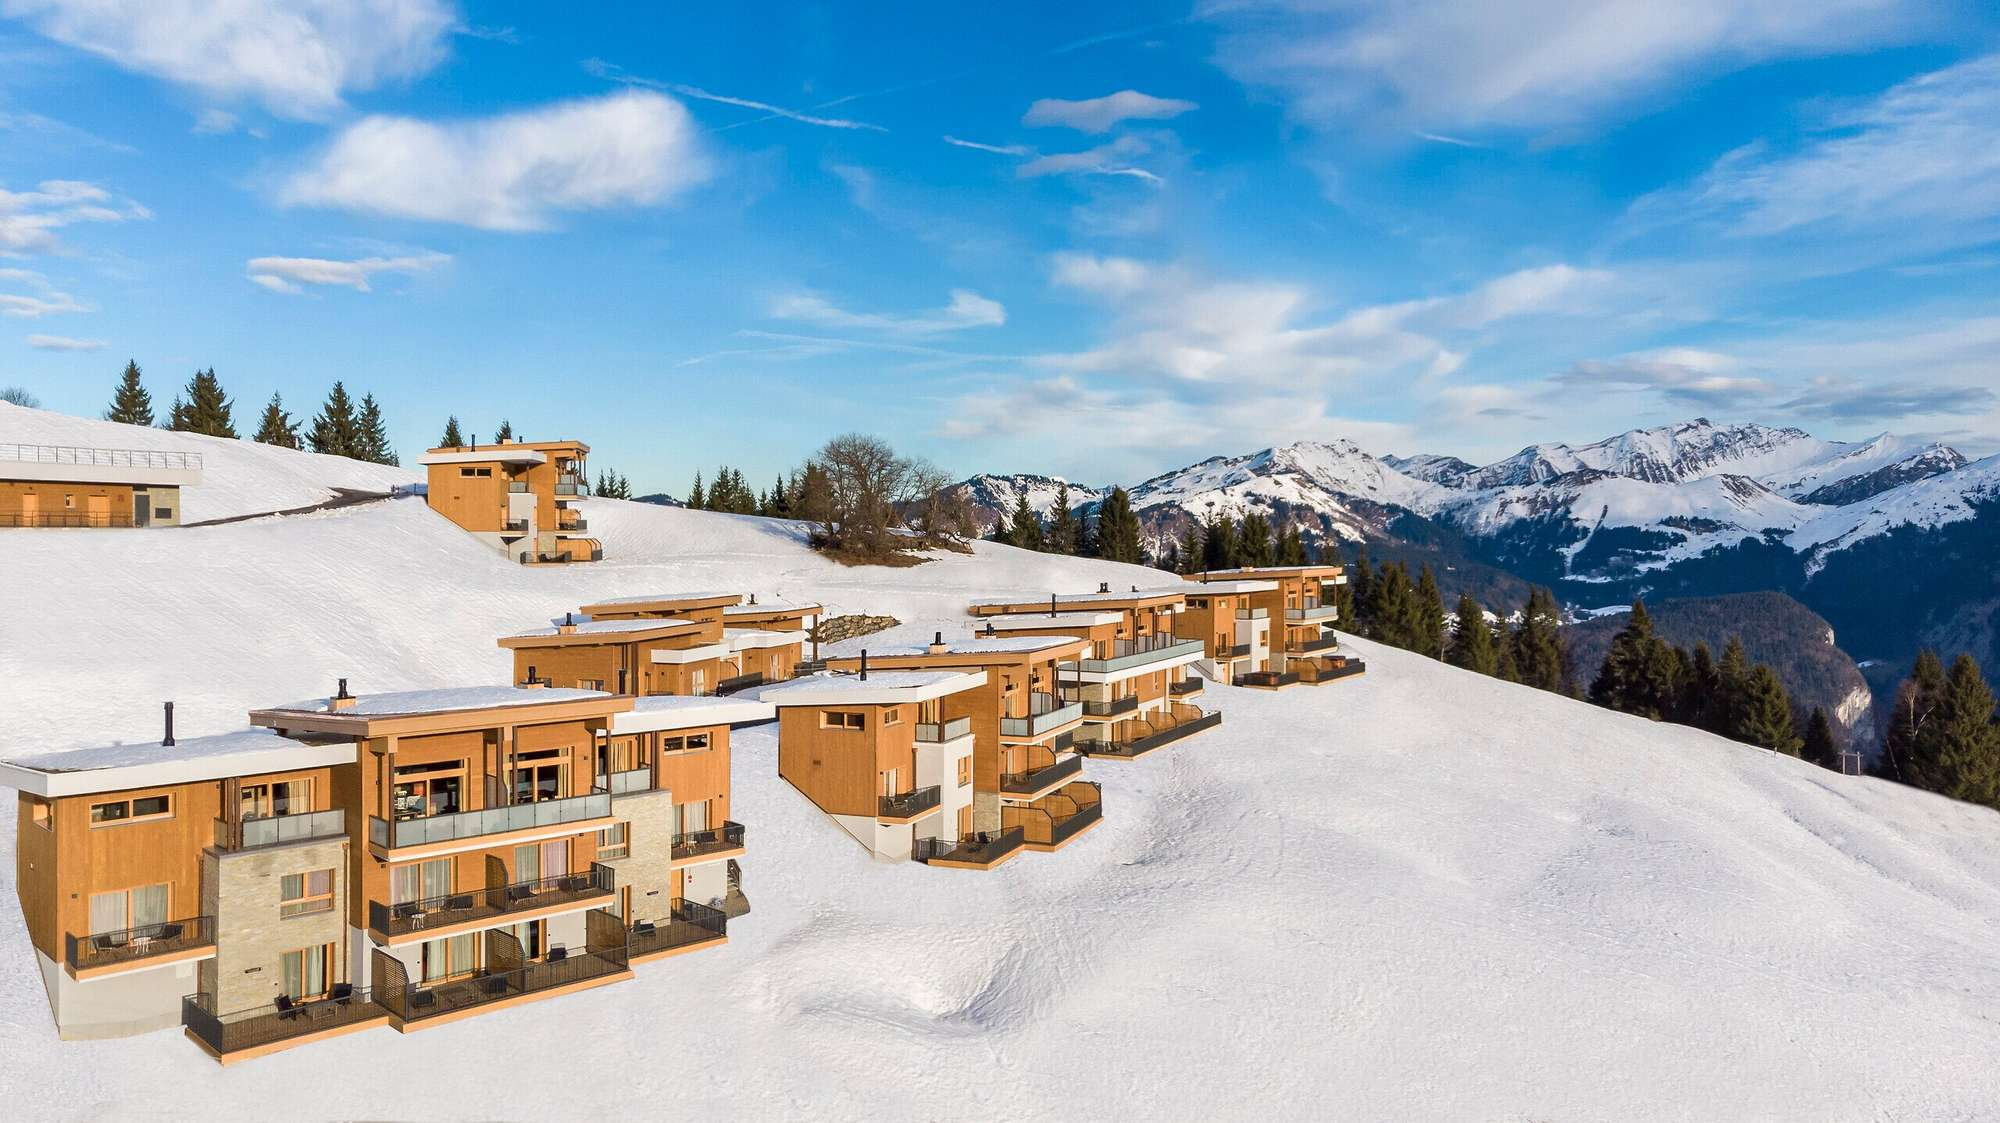 Les Appartements-Chalets de Grand Massif Samoëns Morillon